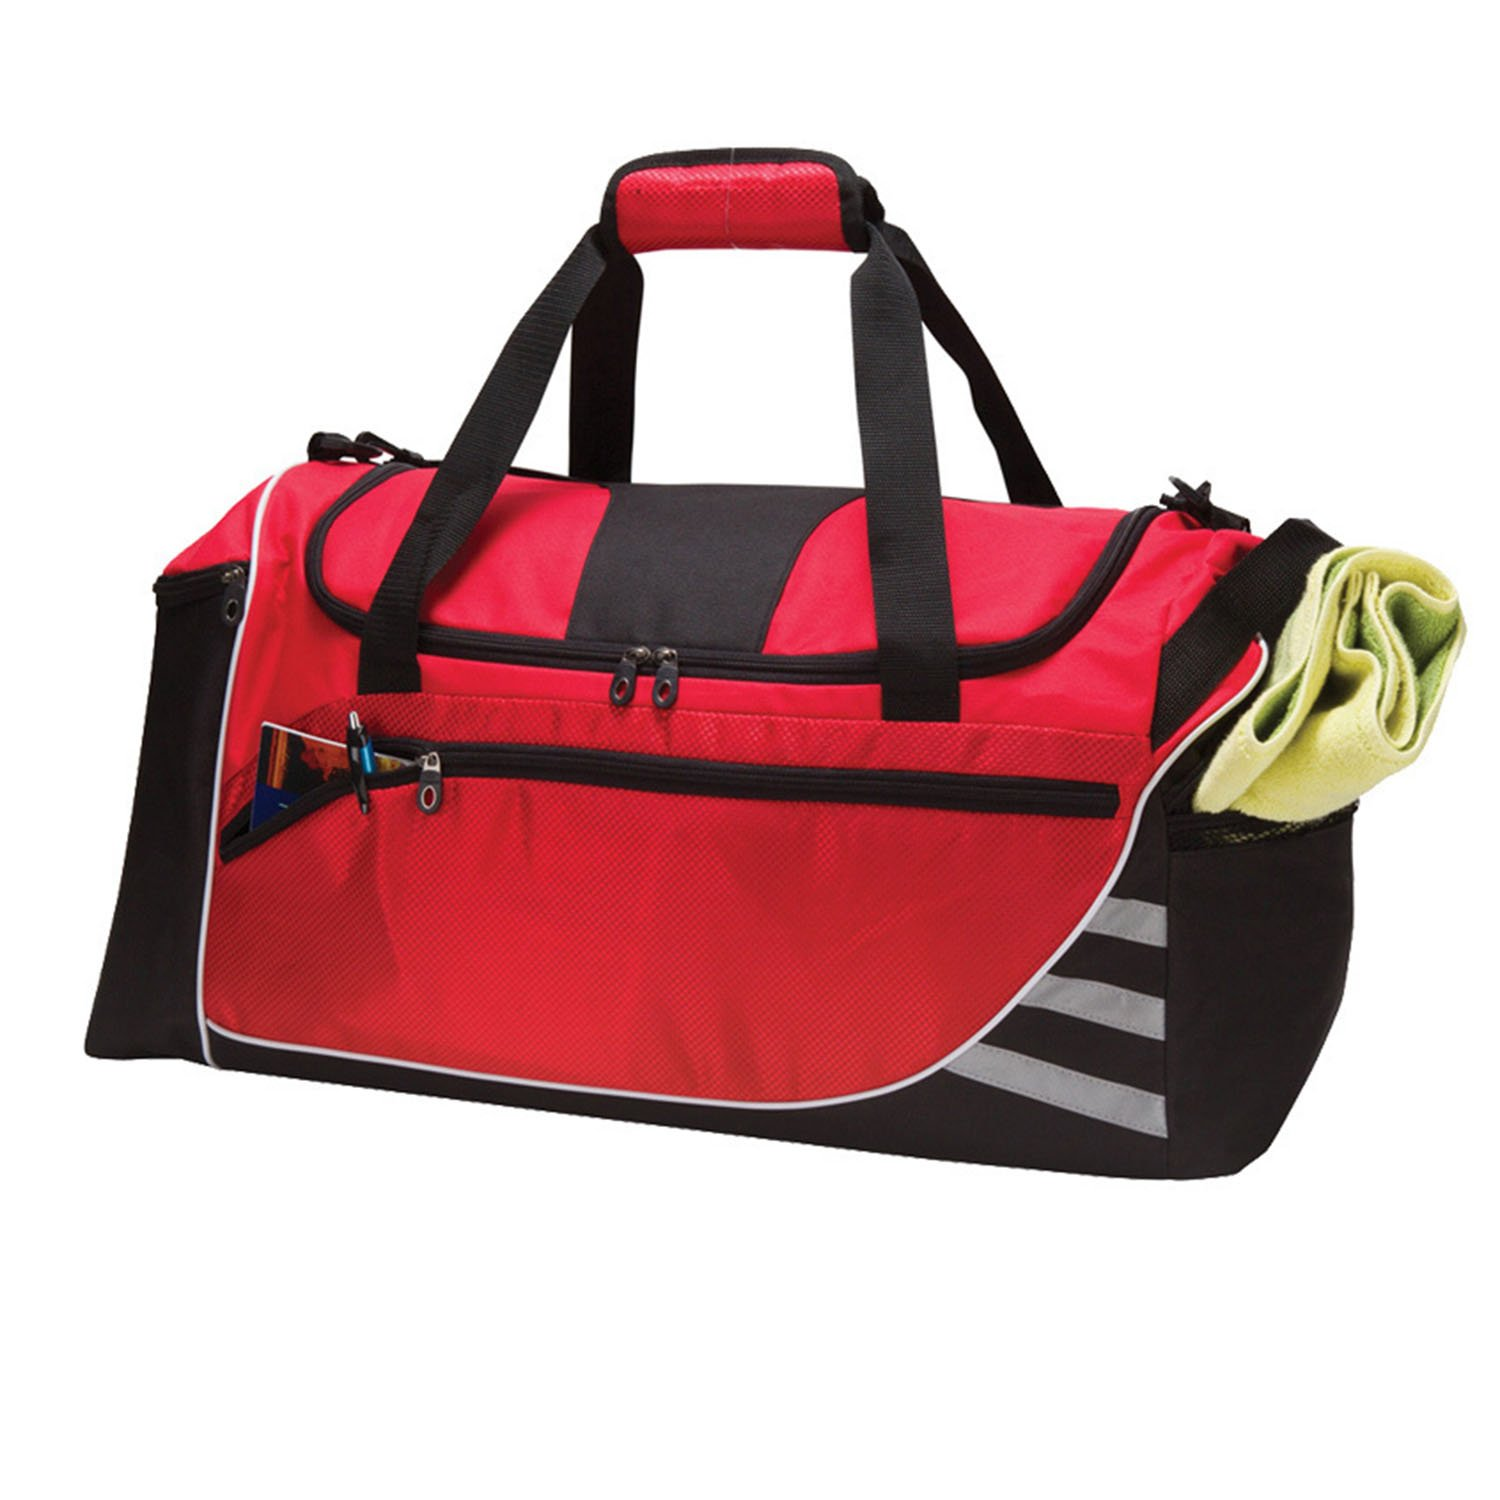 24-inch Nylon Polyester Signature Pattern Red Lightweight Crossfit Gym Bag